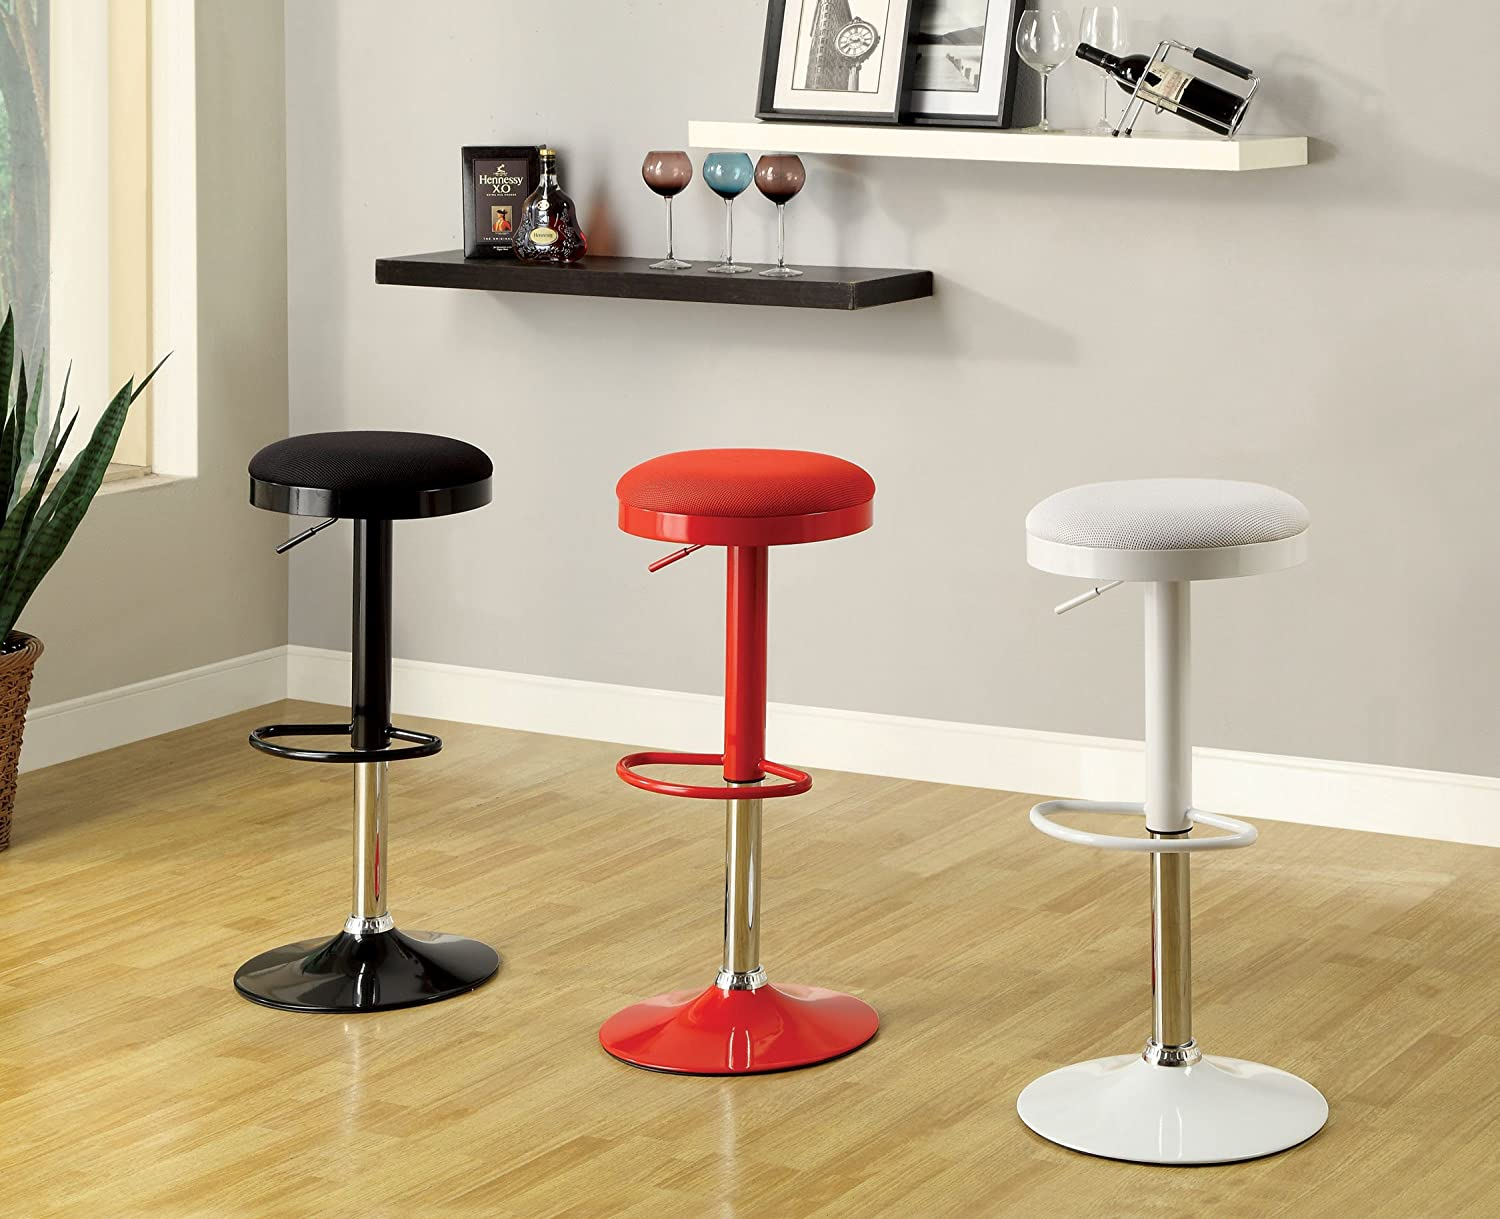 Furniture of America Bailey Mesh Top Swivel Backless Bar Stool, Red, Set of 2